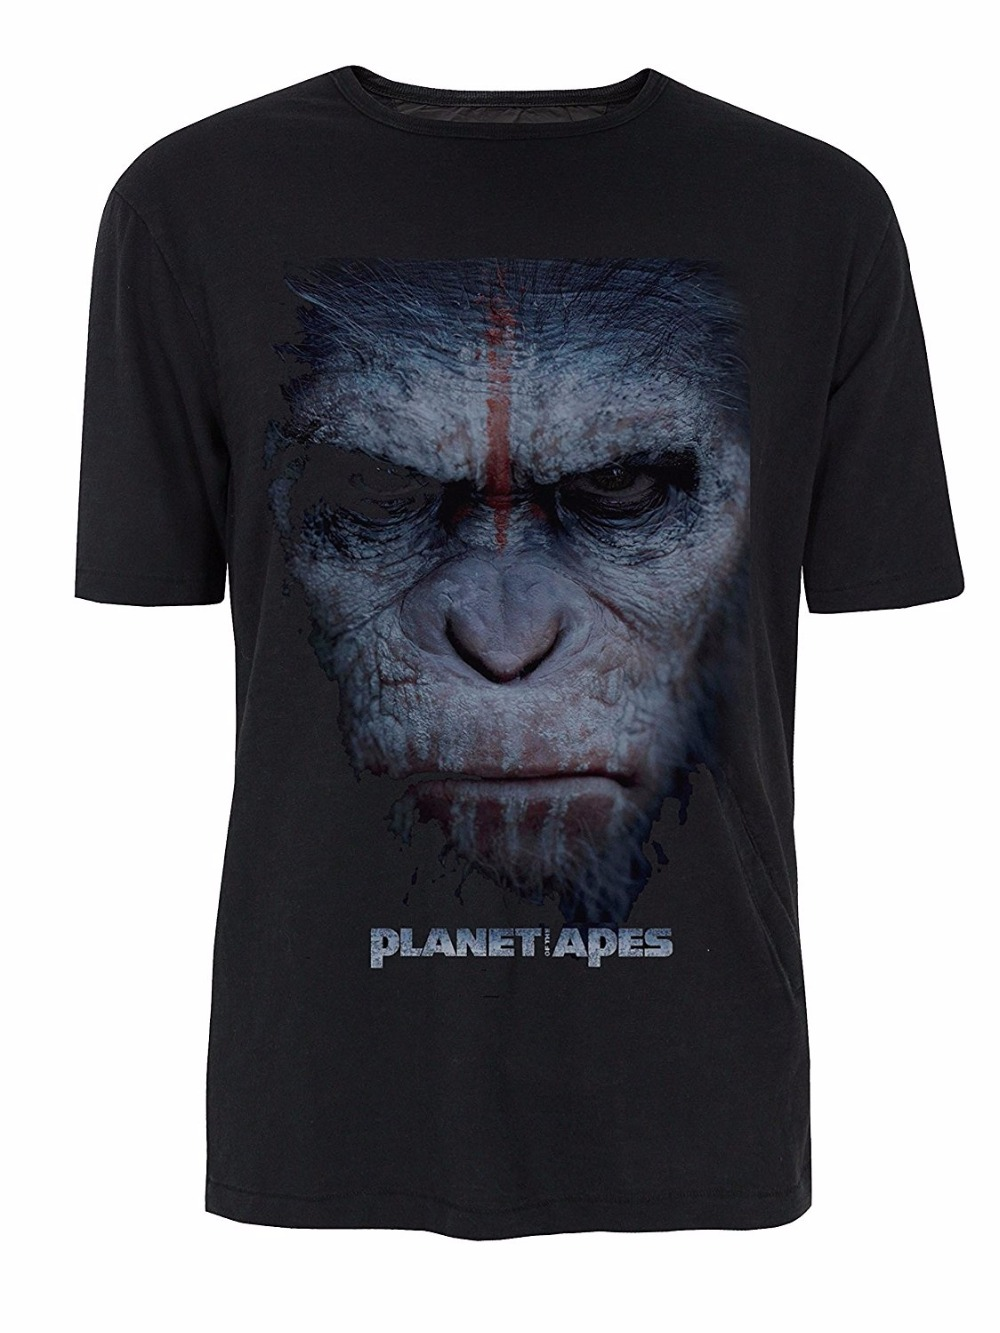 War Paint Caesar Planet Of The Apes T-Shirt Summer Cotton Casual T Shirts Novelty Cool Tops Men Short Sleeve Tshirt ...